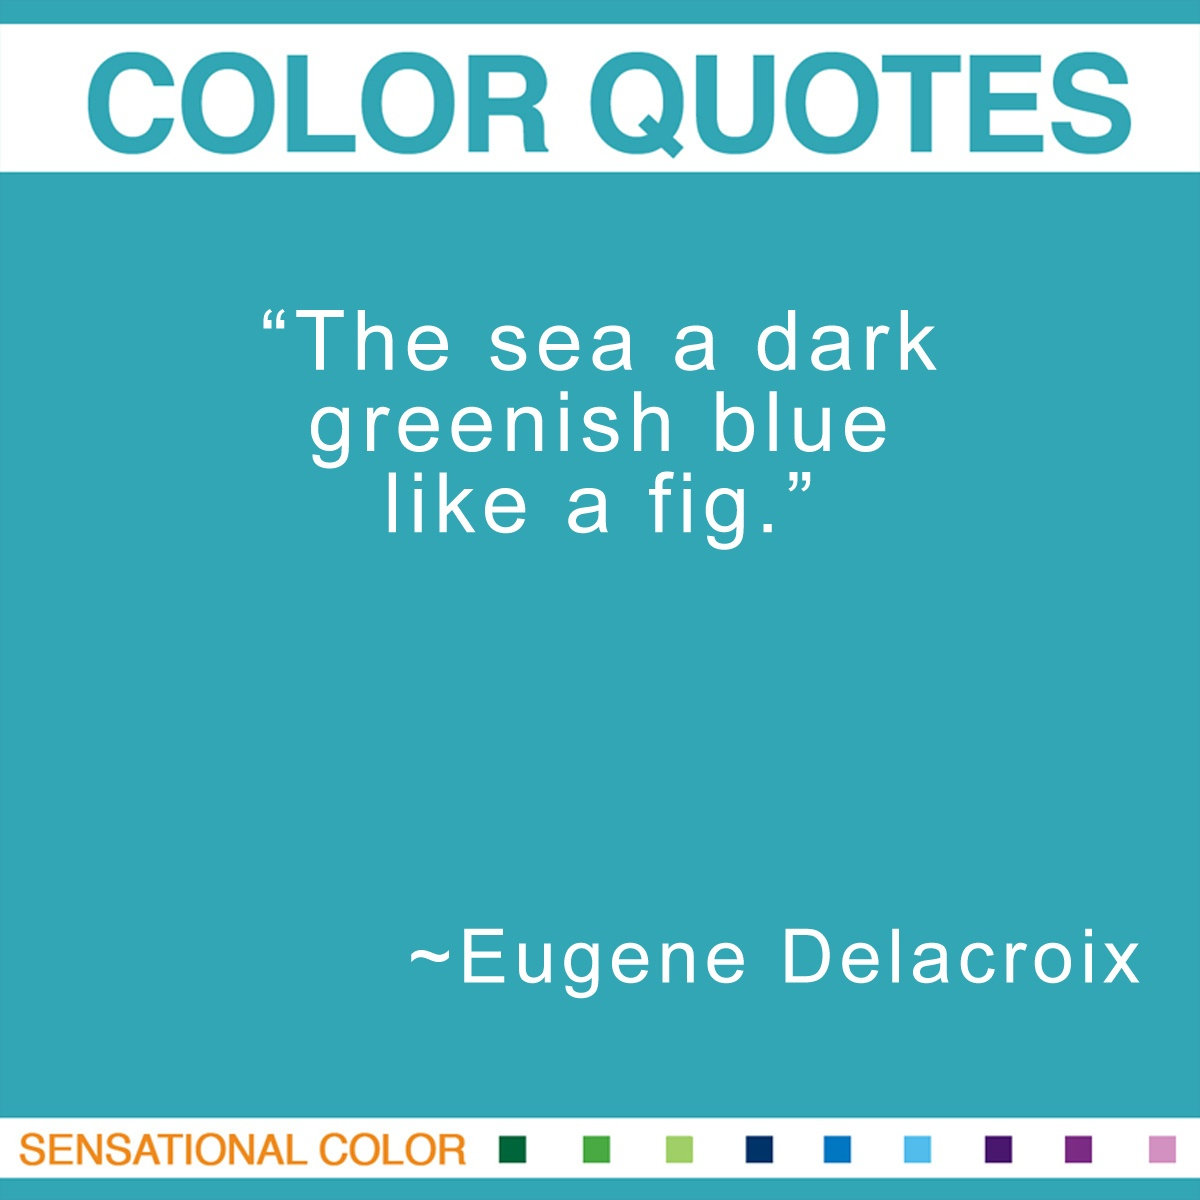 """The sea a dark greenish blue like a fig."" - Eugene Delacroix"